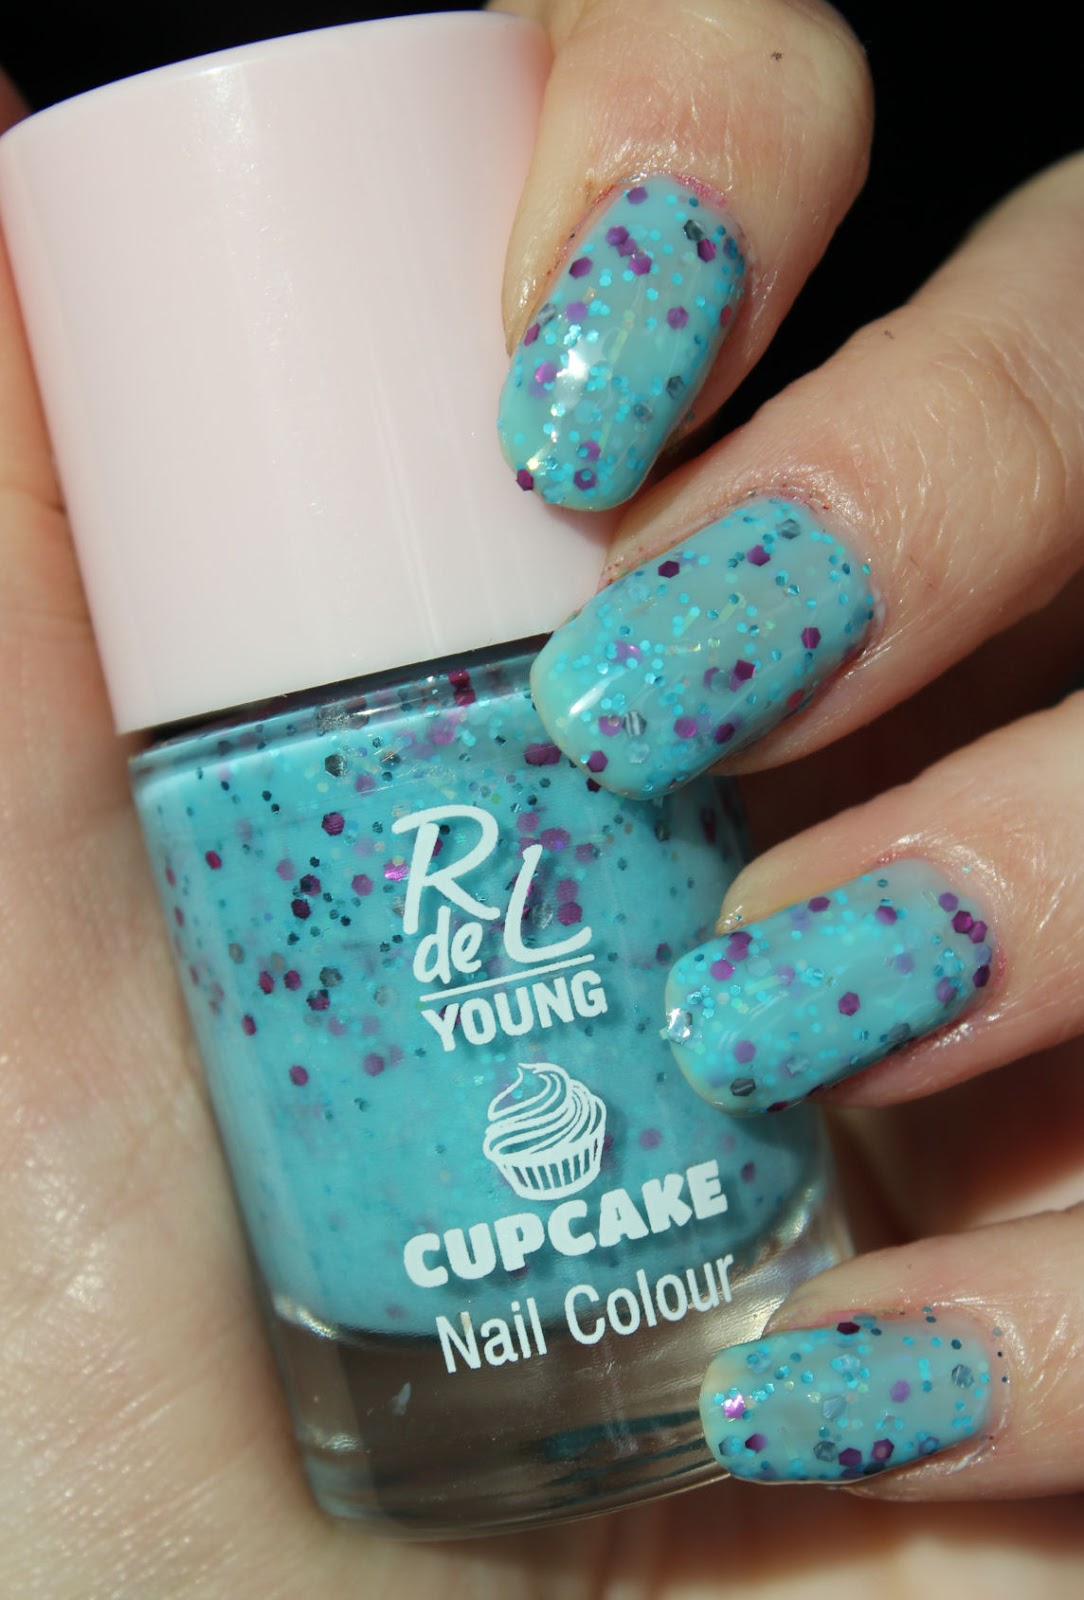 http://lacquediction.blogspot.de/2014/03/rival-de-loop-young-cupcake-le-swatches.html